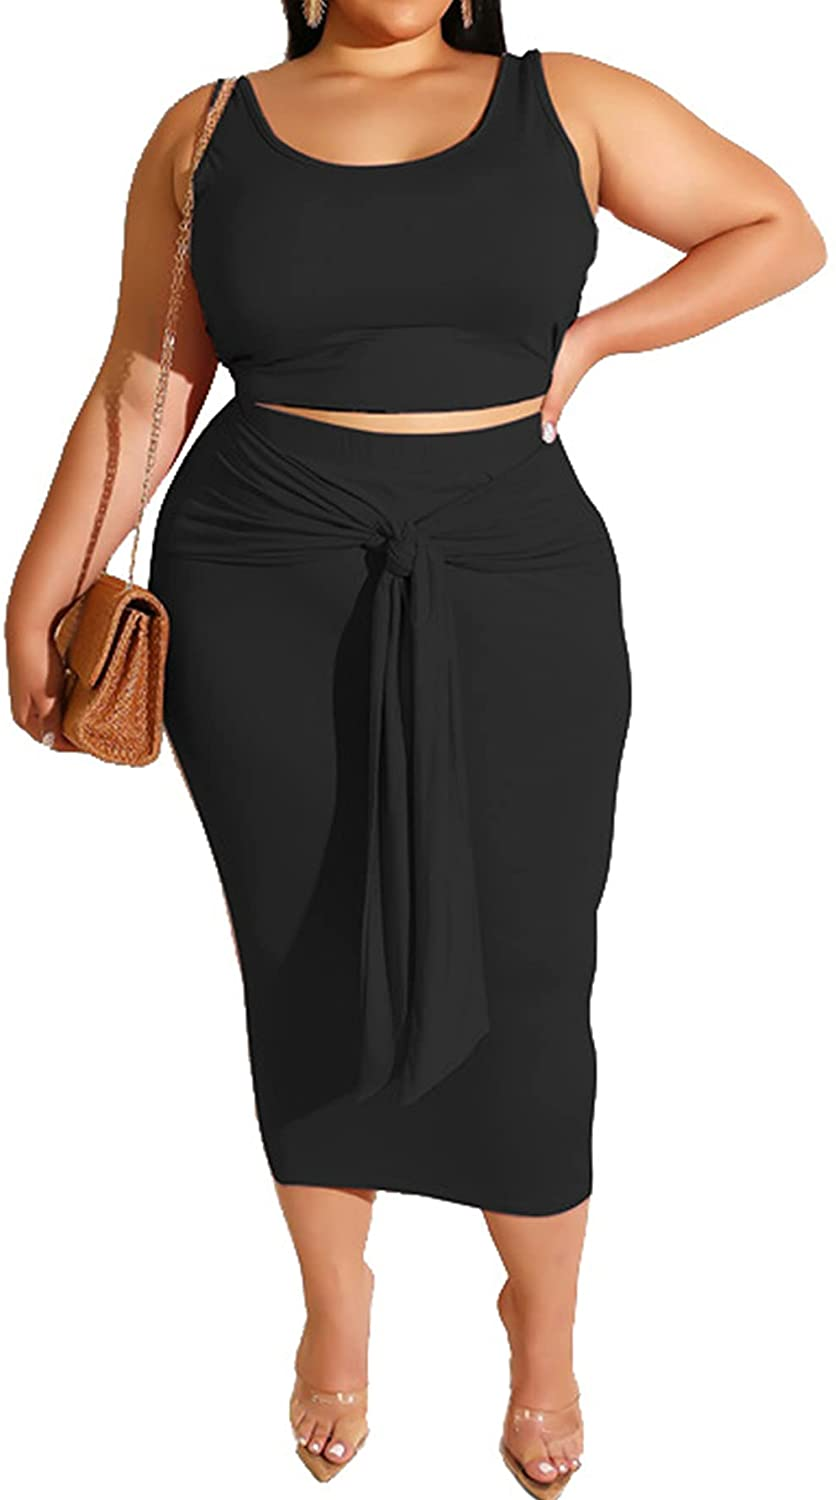 Plus Size Women 2 Piece Outfits Sets Fall Sexy Tracksuit Midi Dress,Sleeveless Tank Top Bodycon Skirts Set Casual